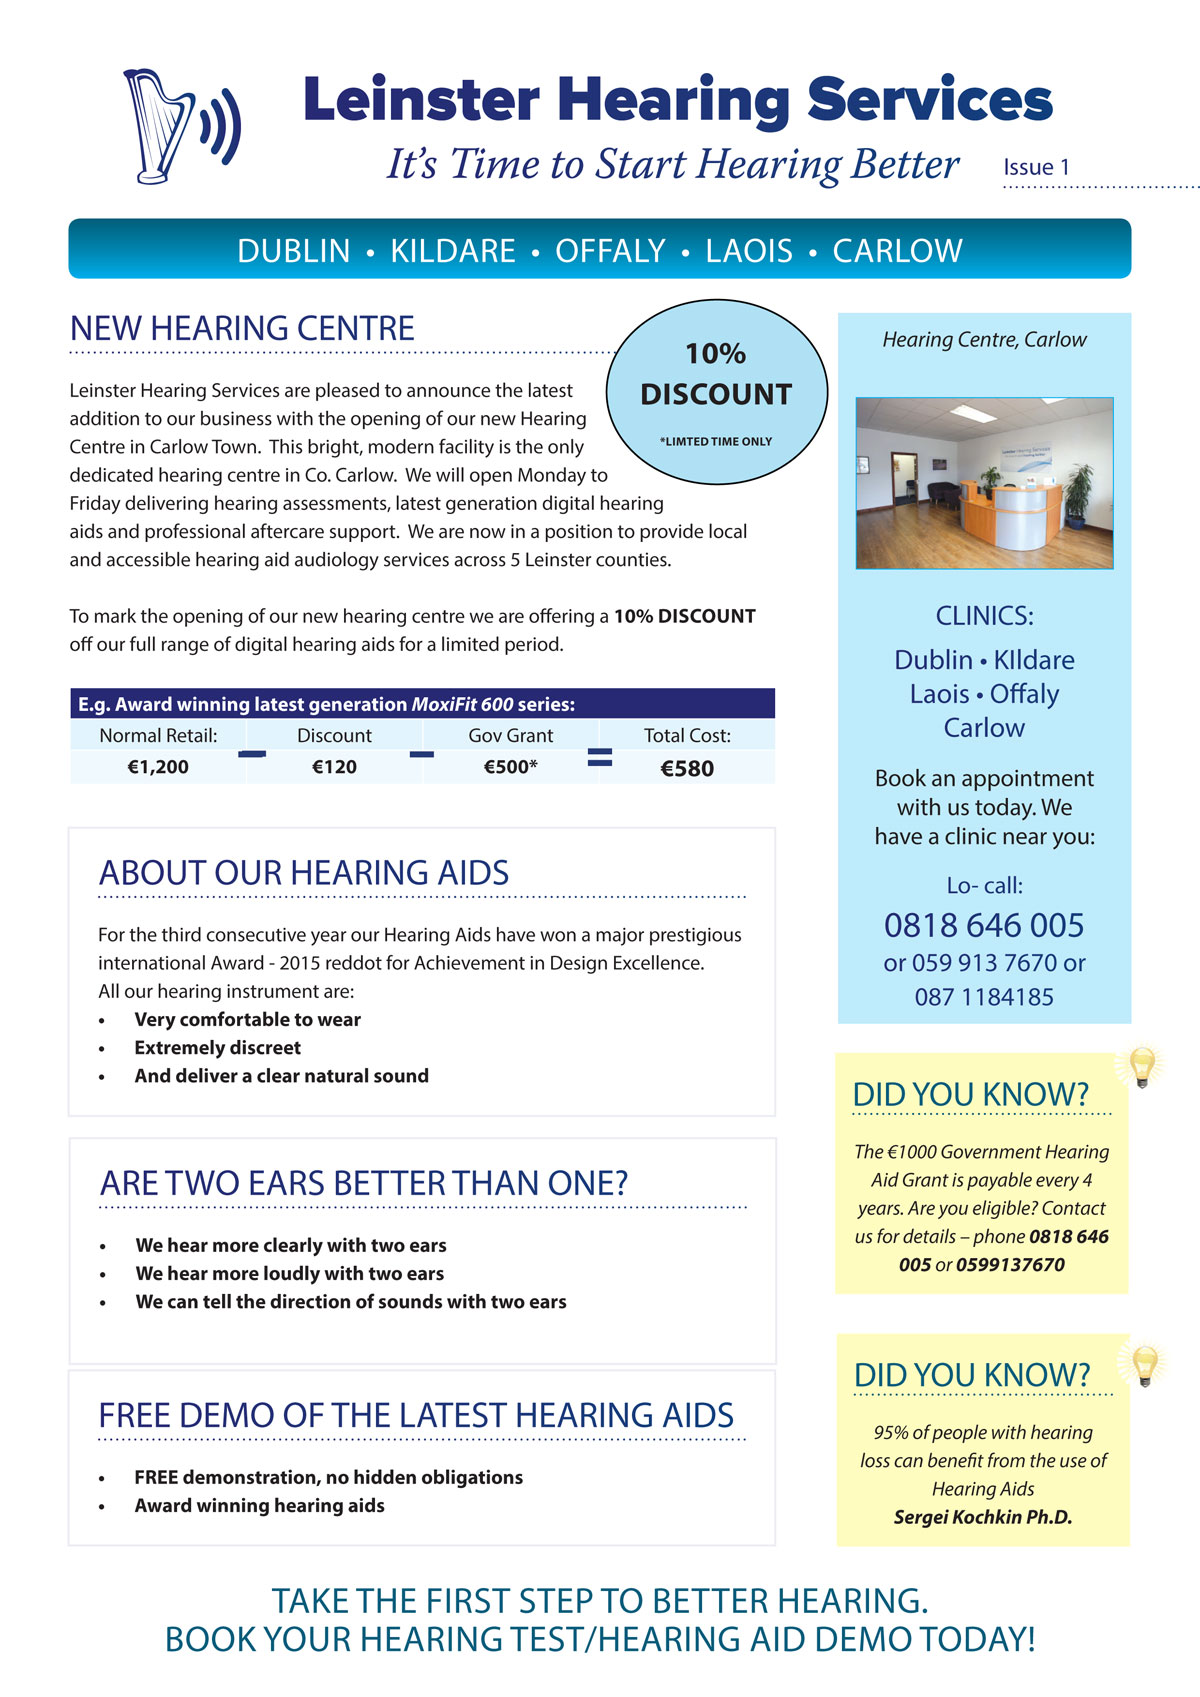 Leinster-Hearing-Services--Newslette-Issue-1-1